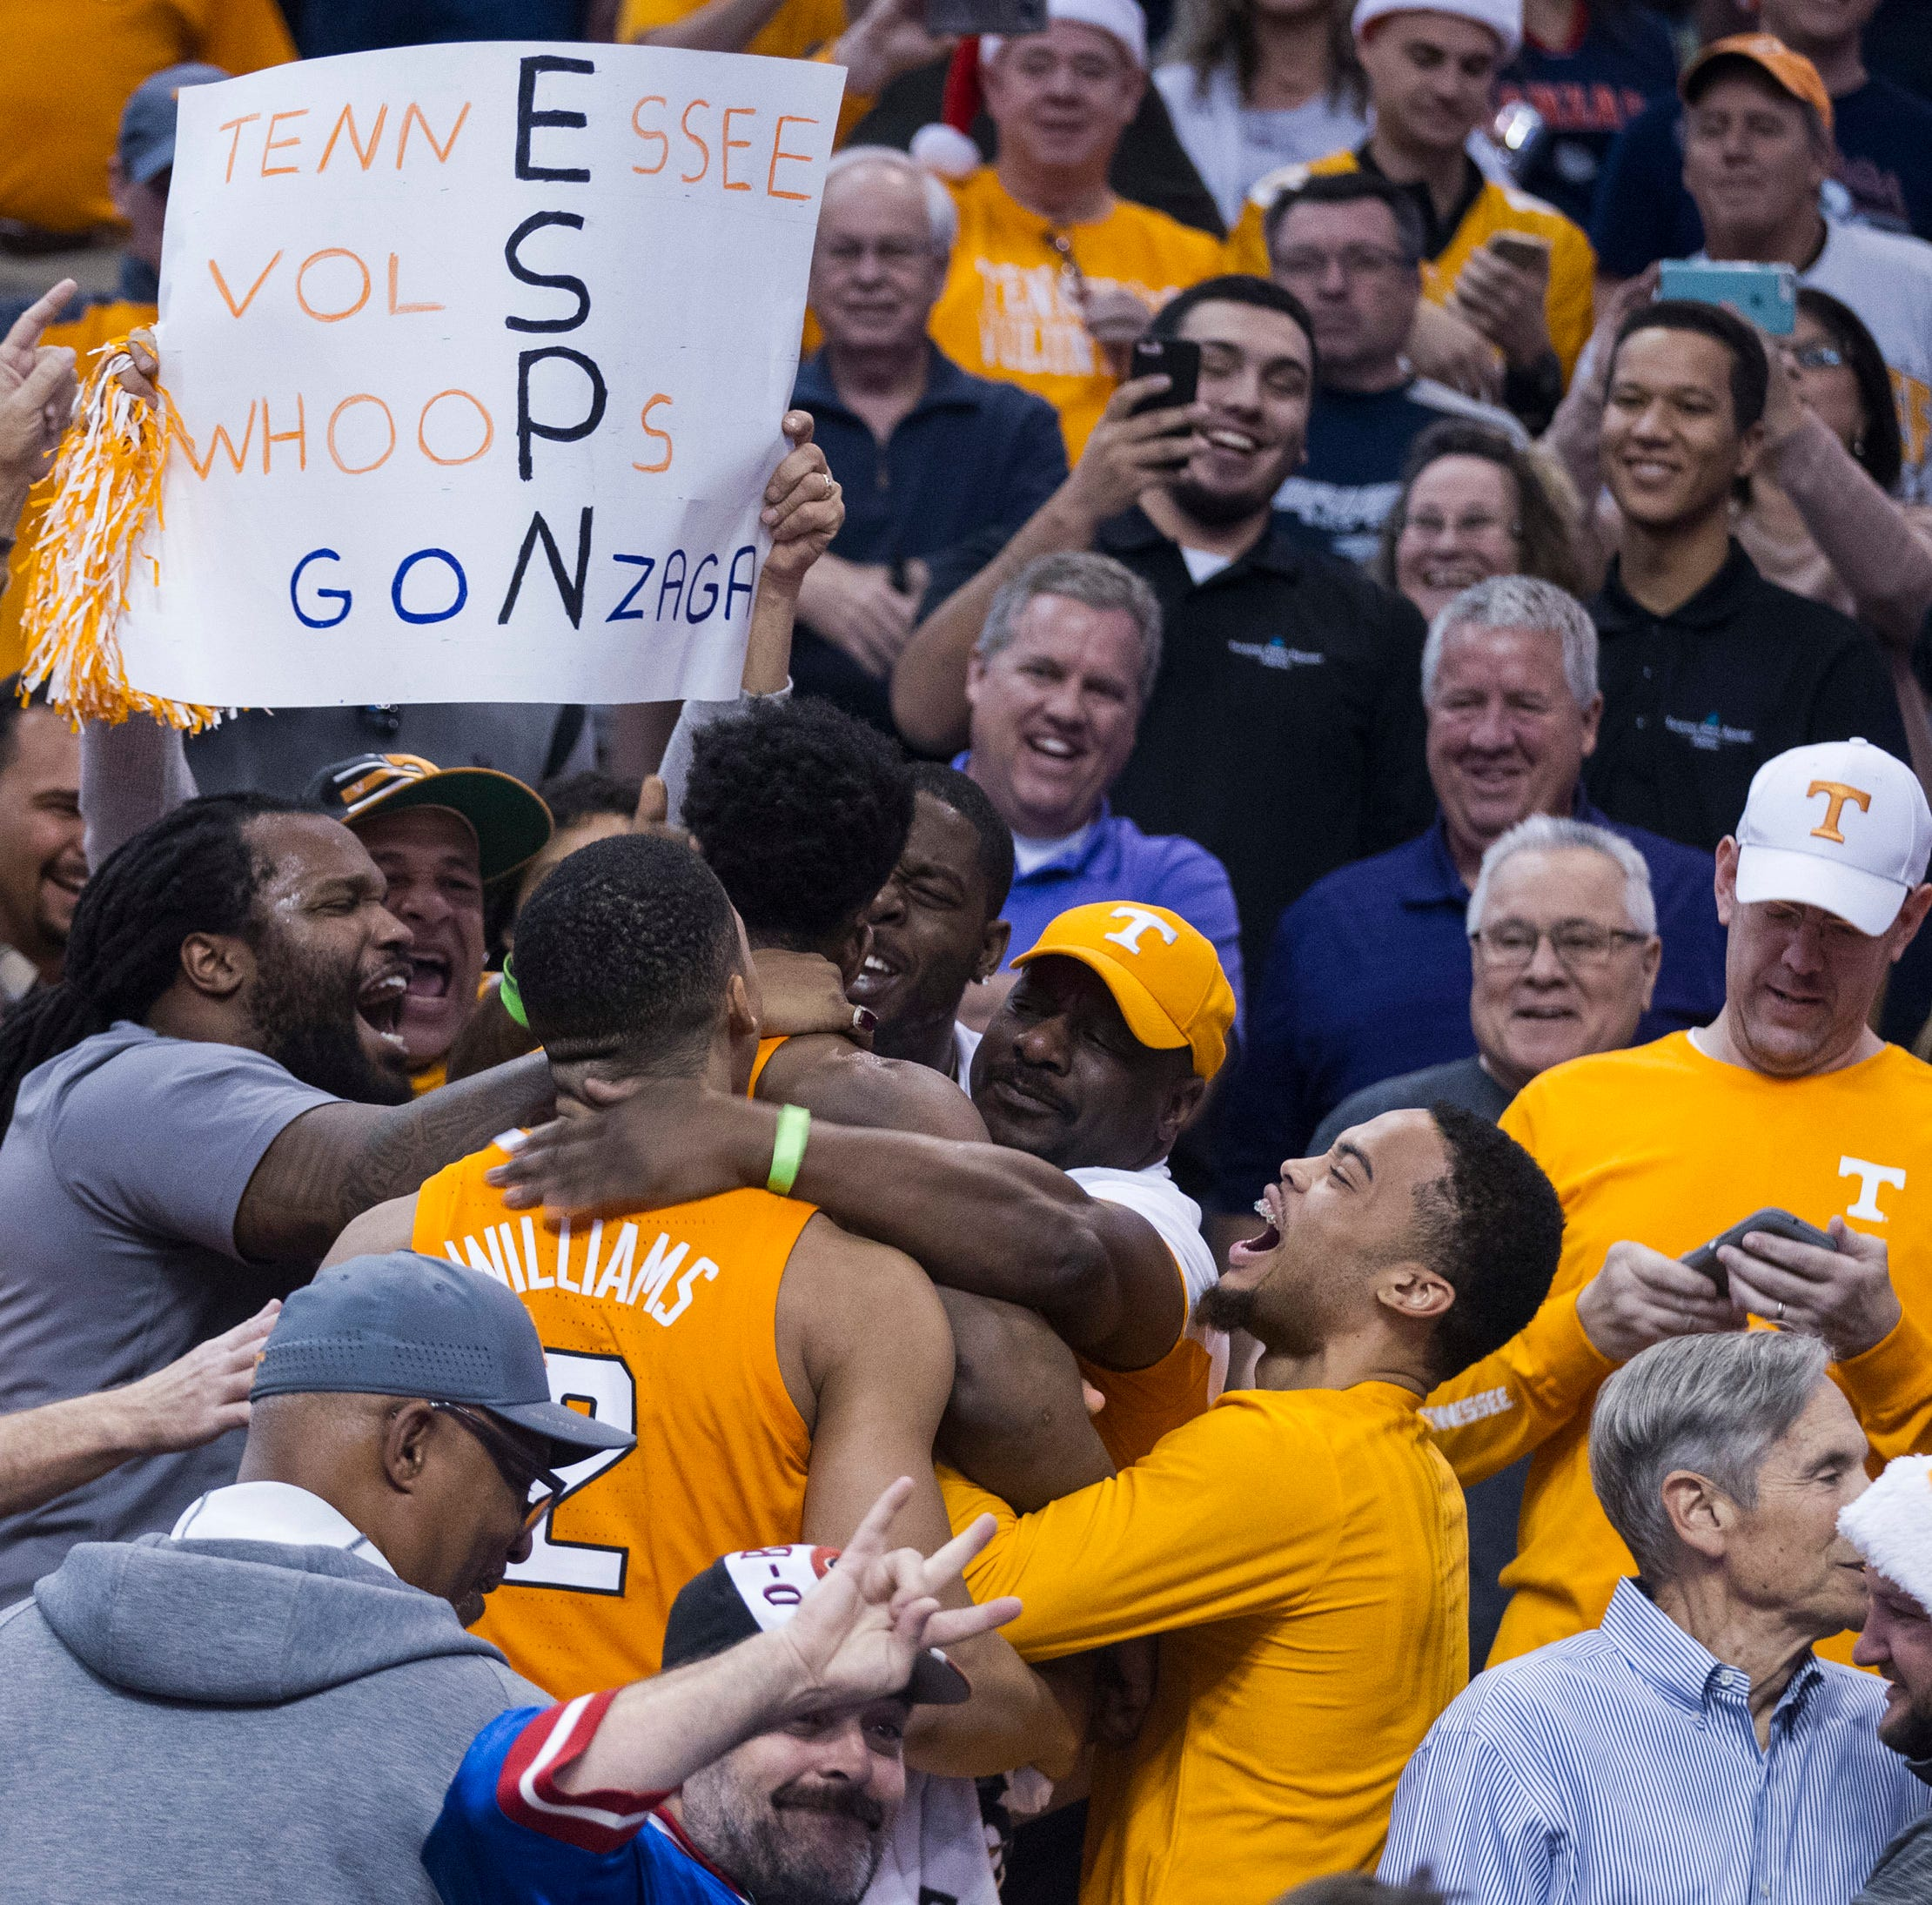 UT Vols fans welcome Tennessee basketball back to Knoxville after Gonzaga win